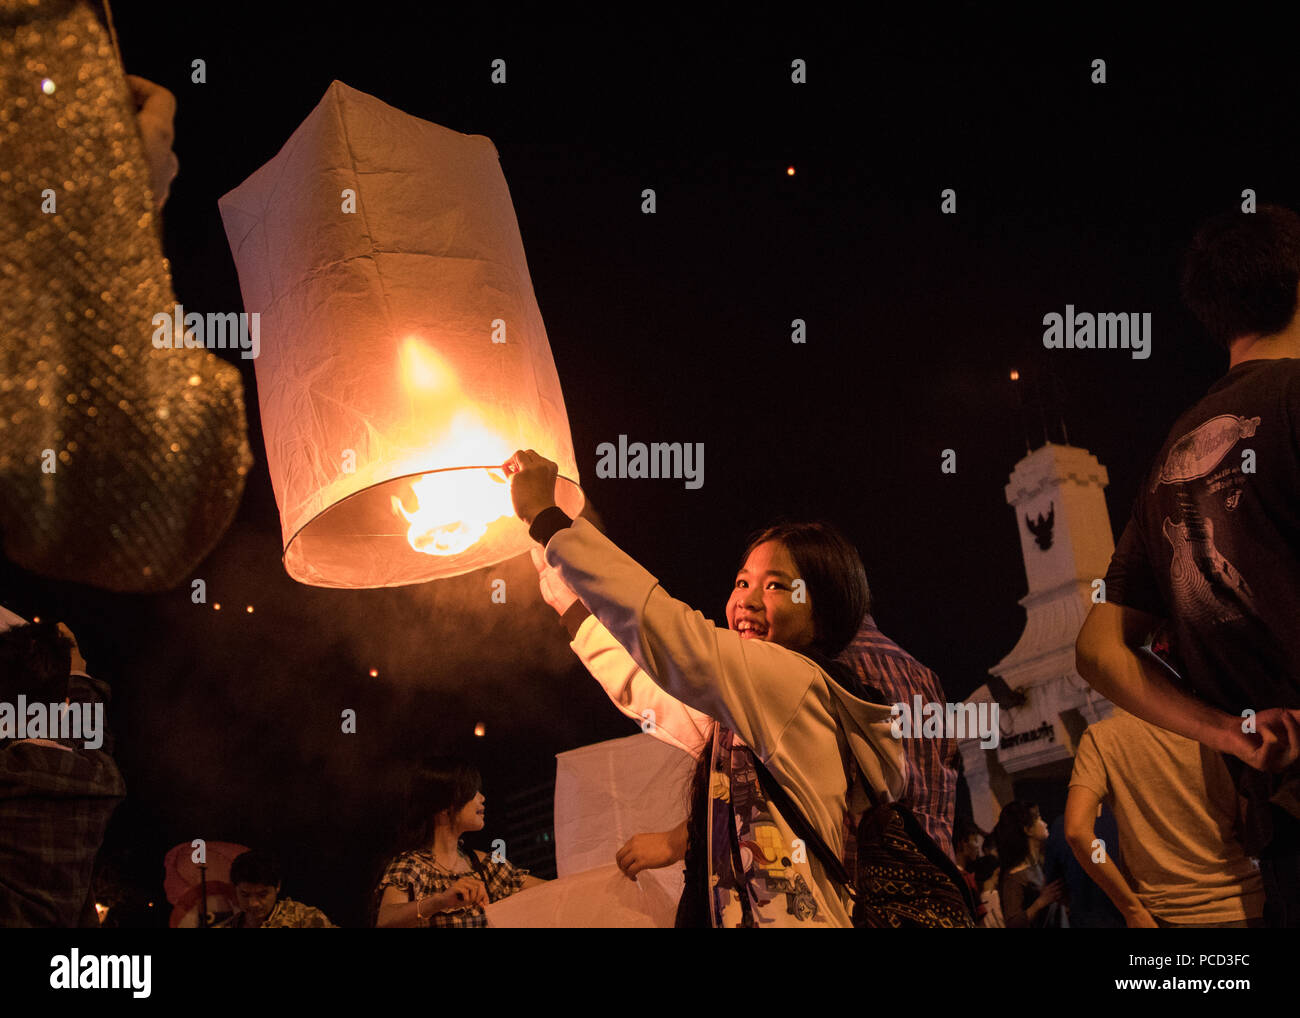 Releasing lanterns, Yee Peng and Loy Krathong Festival, Chiang Mai, Thailand, Southeast Asia, Asia Stock Photo